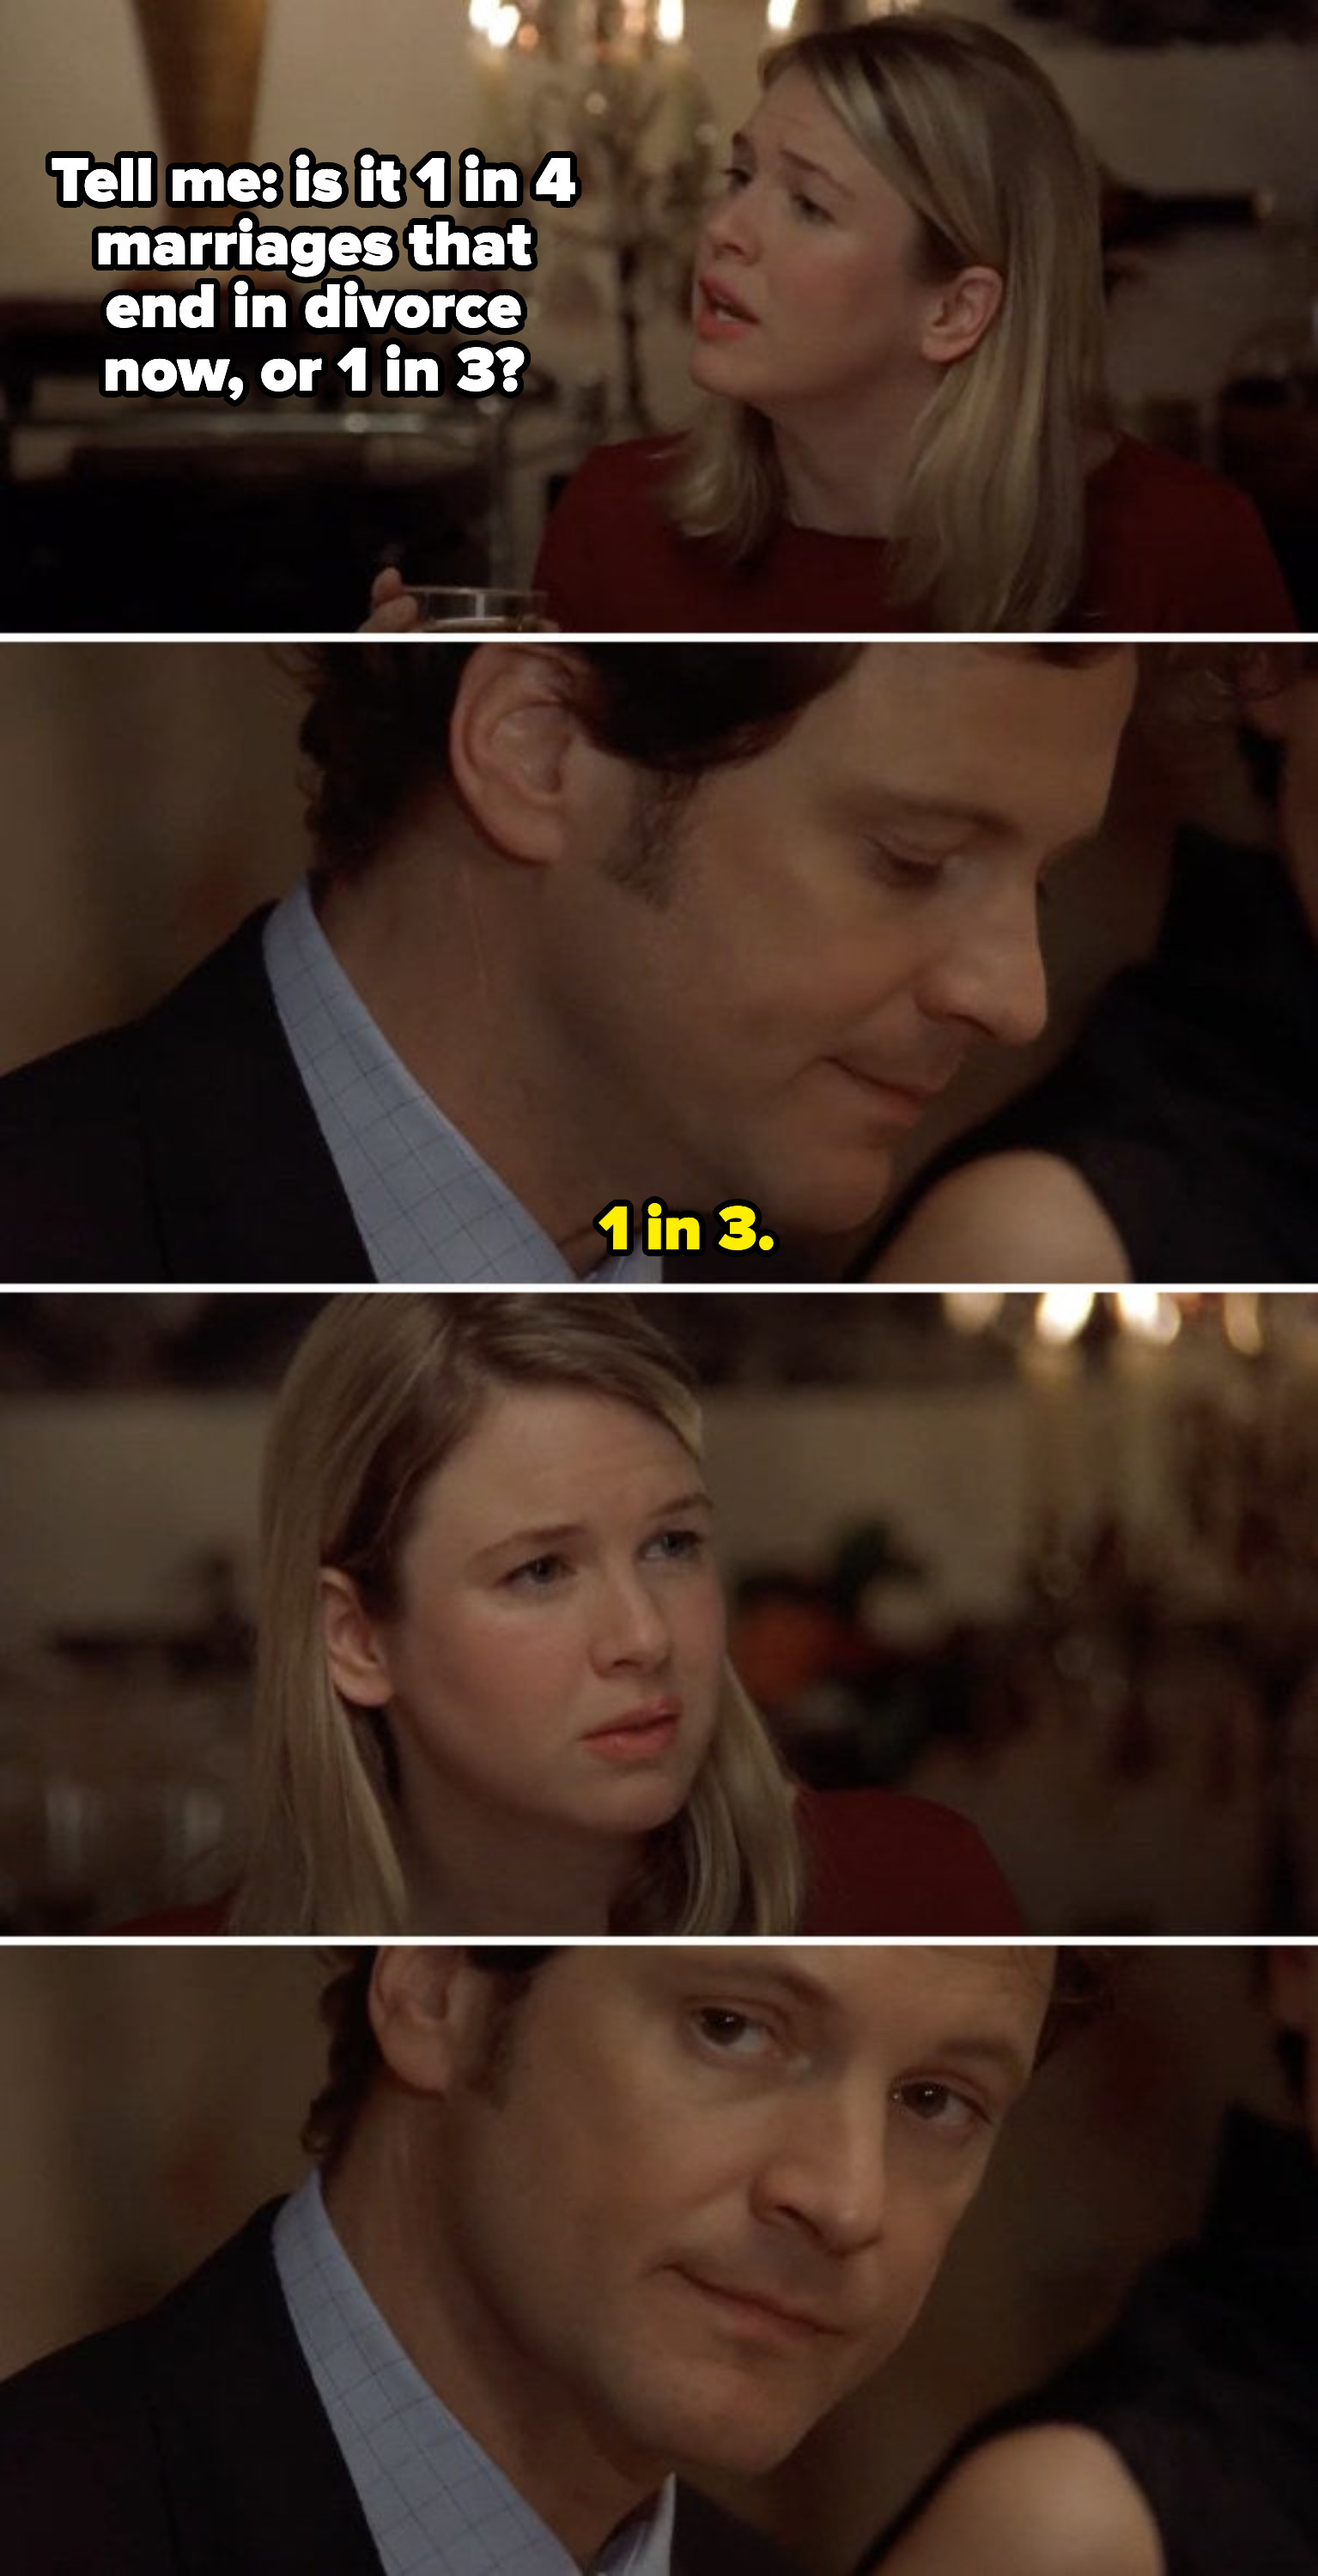 """Bridget asking a married man: """"Tell me, is it 1 in 4 marriages that end in divorce, or 1 in 3?"""" Mark: """"1 in 3"""""""